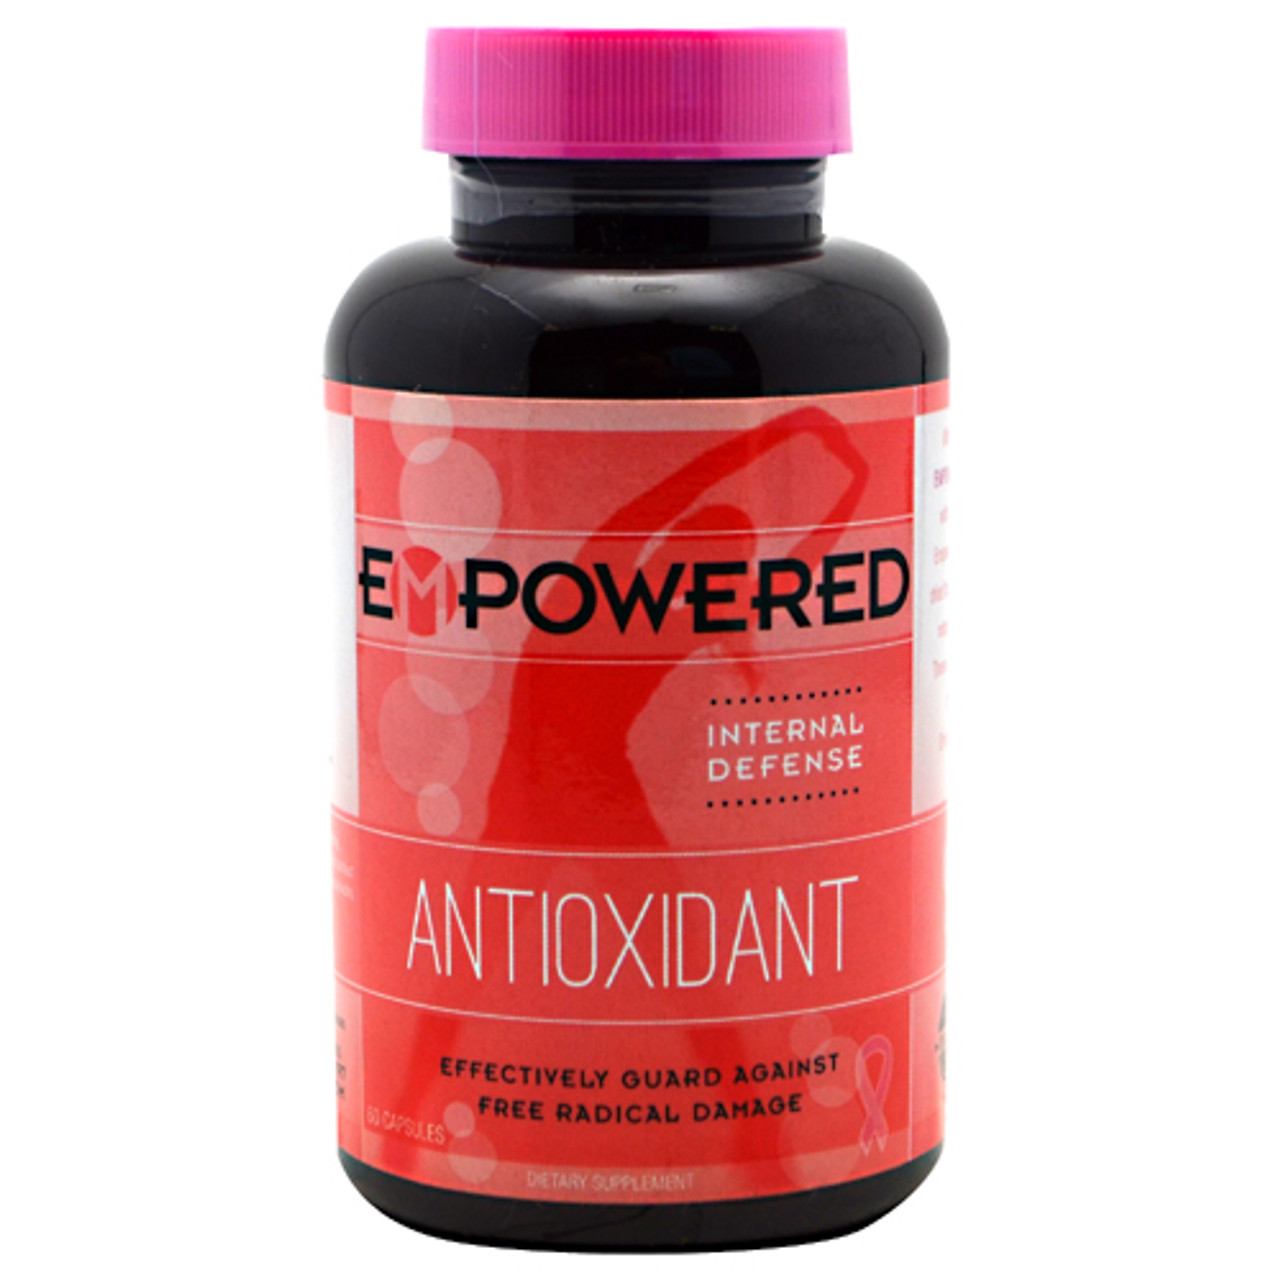 Empowered Antioxidant by Nature's Research Nutritionals 60ct